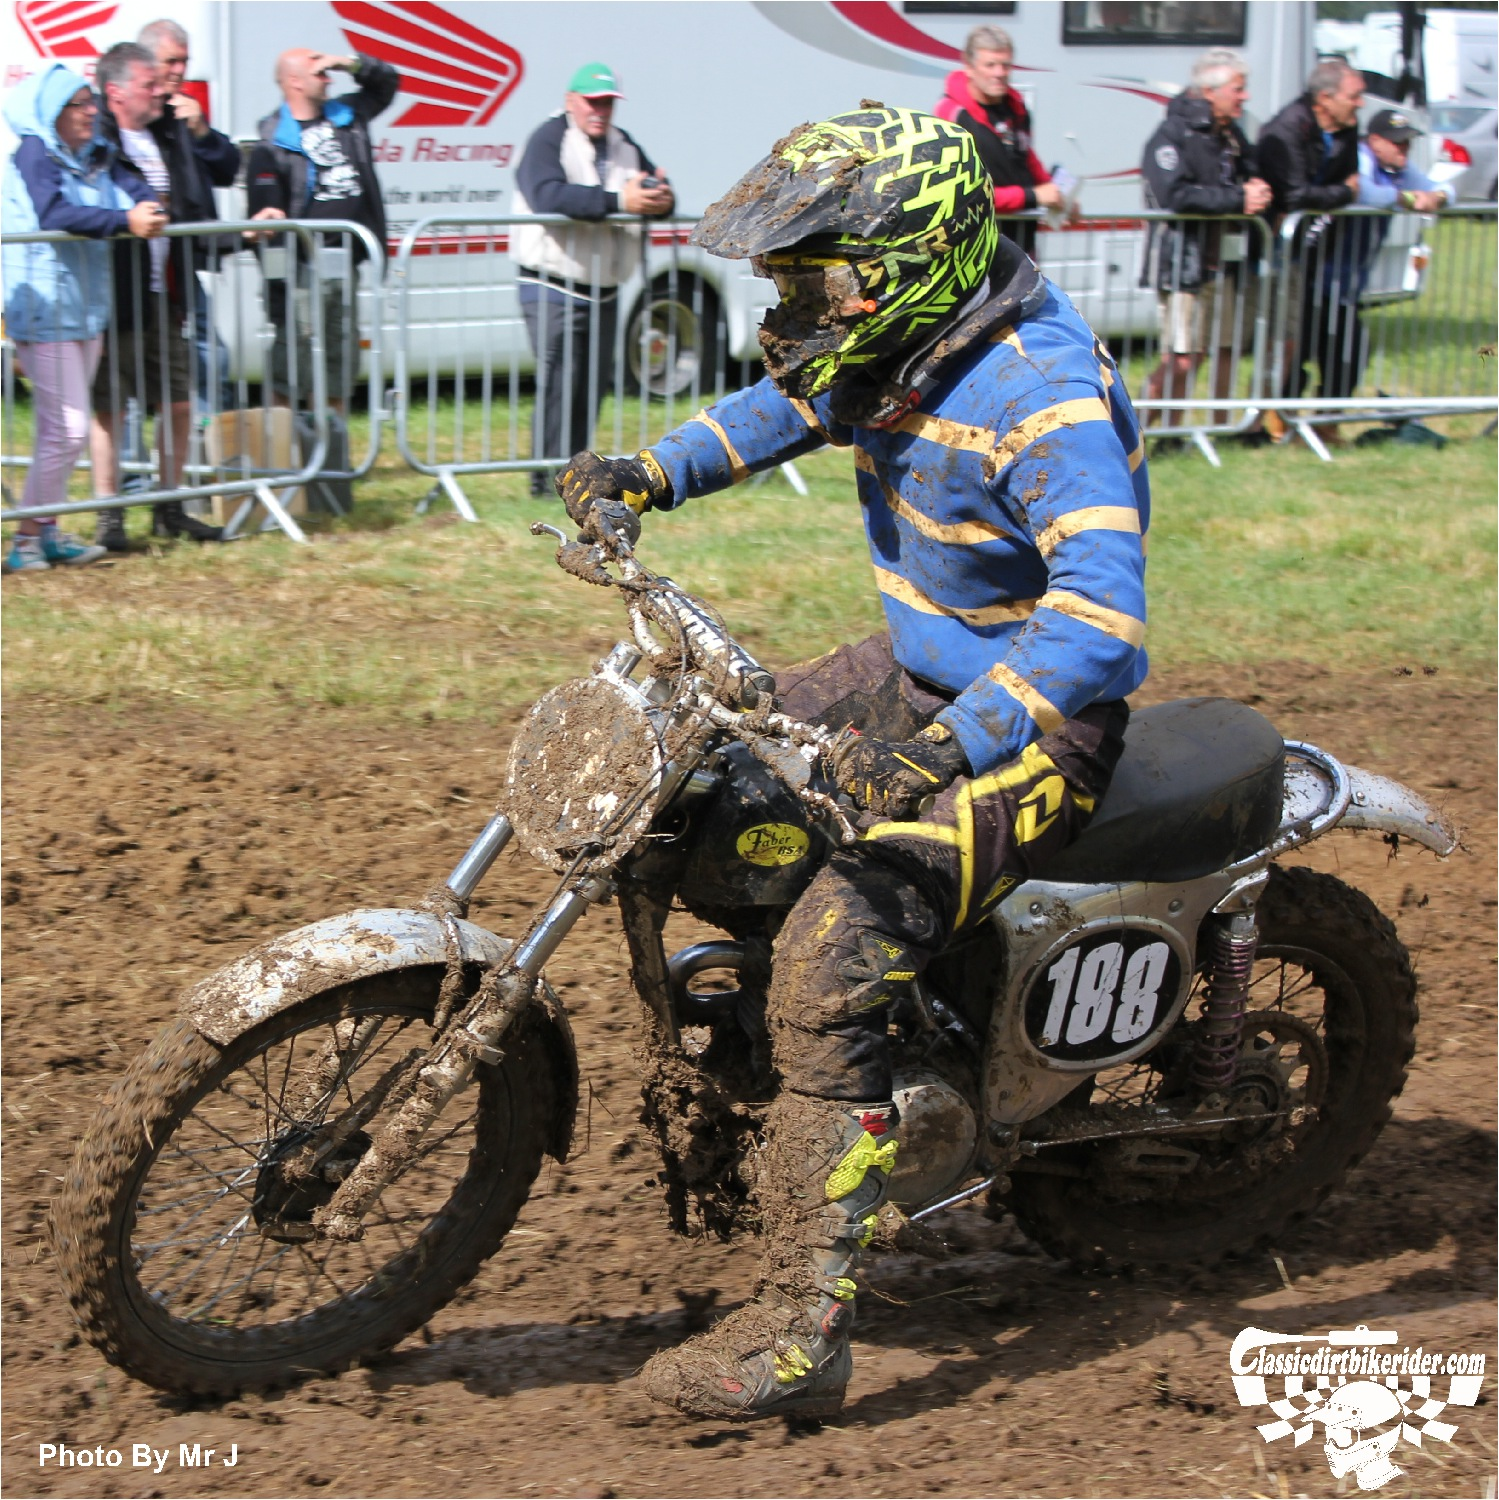 king of the castle 2015 photos Farleigh Castle twinshock motocross classicdirtbikerider.com 83